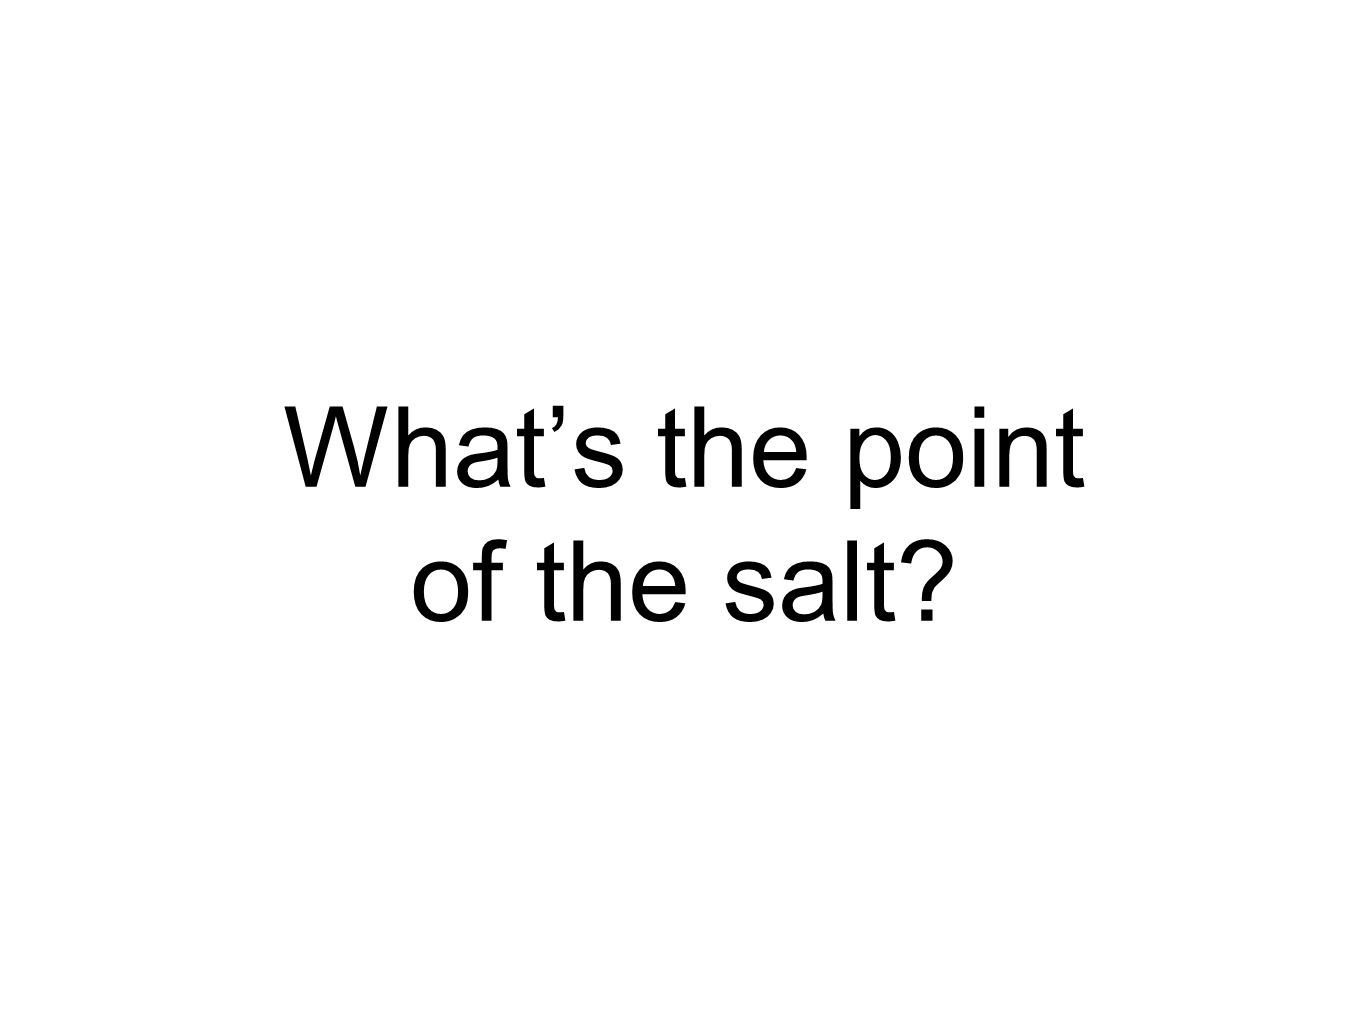 What's the point of the salt?